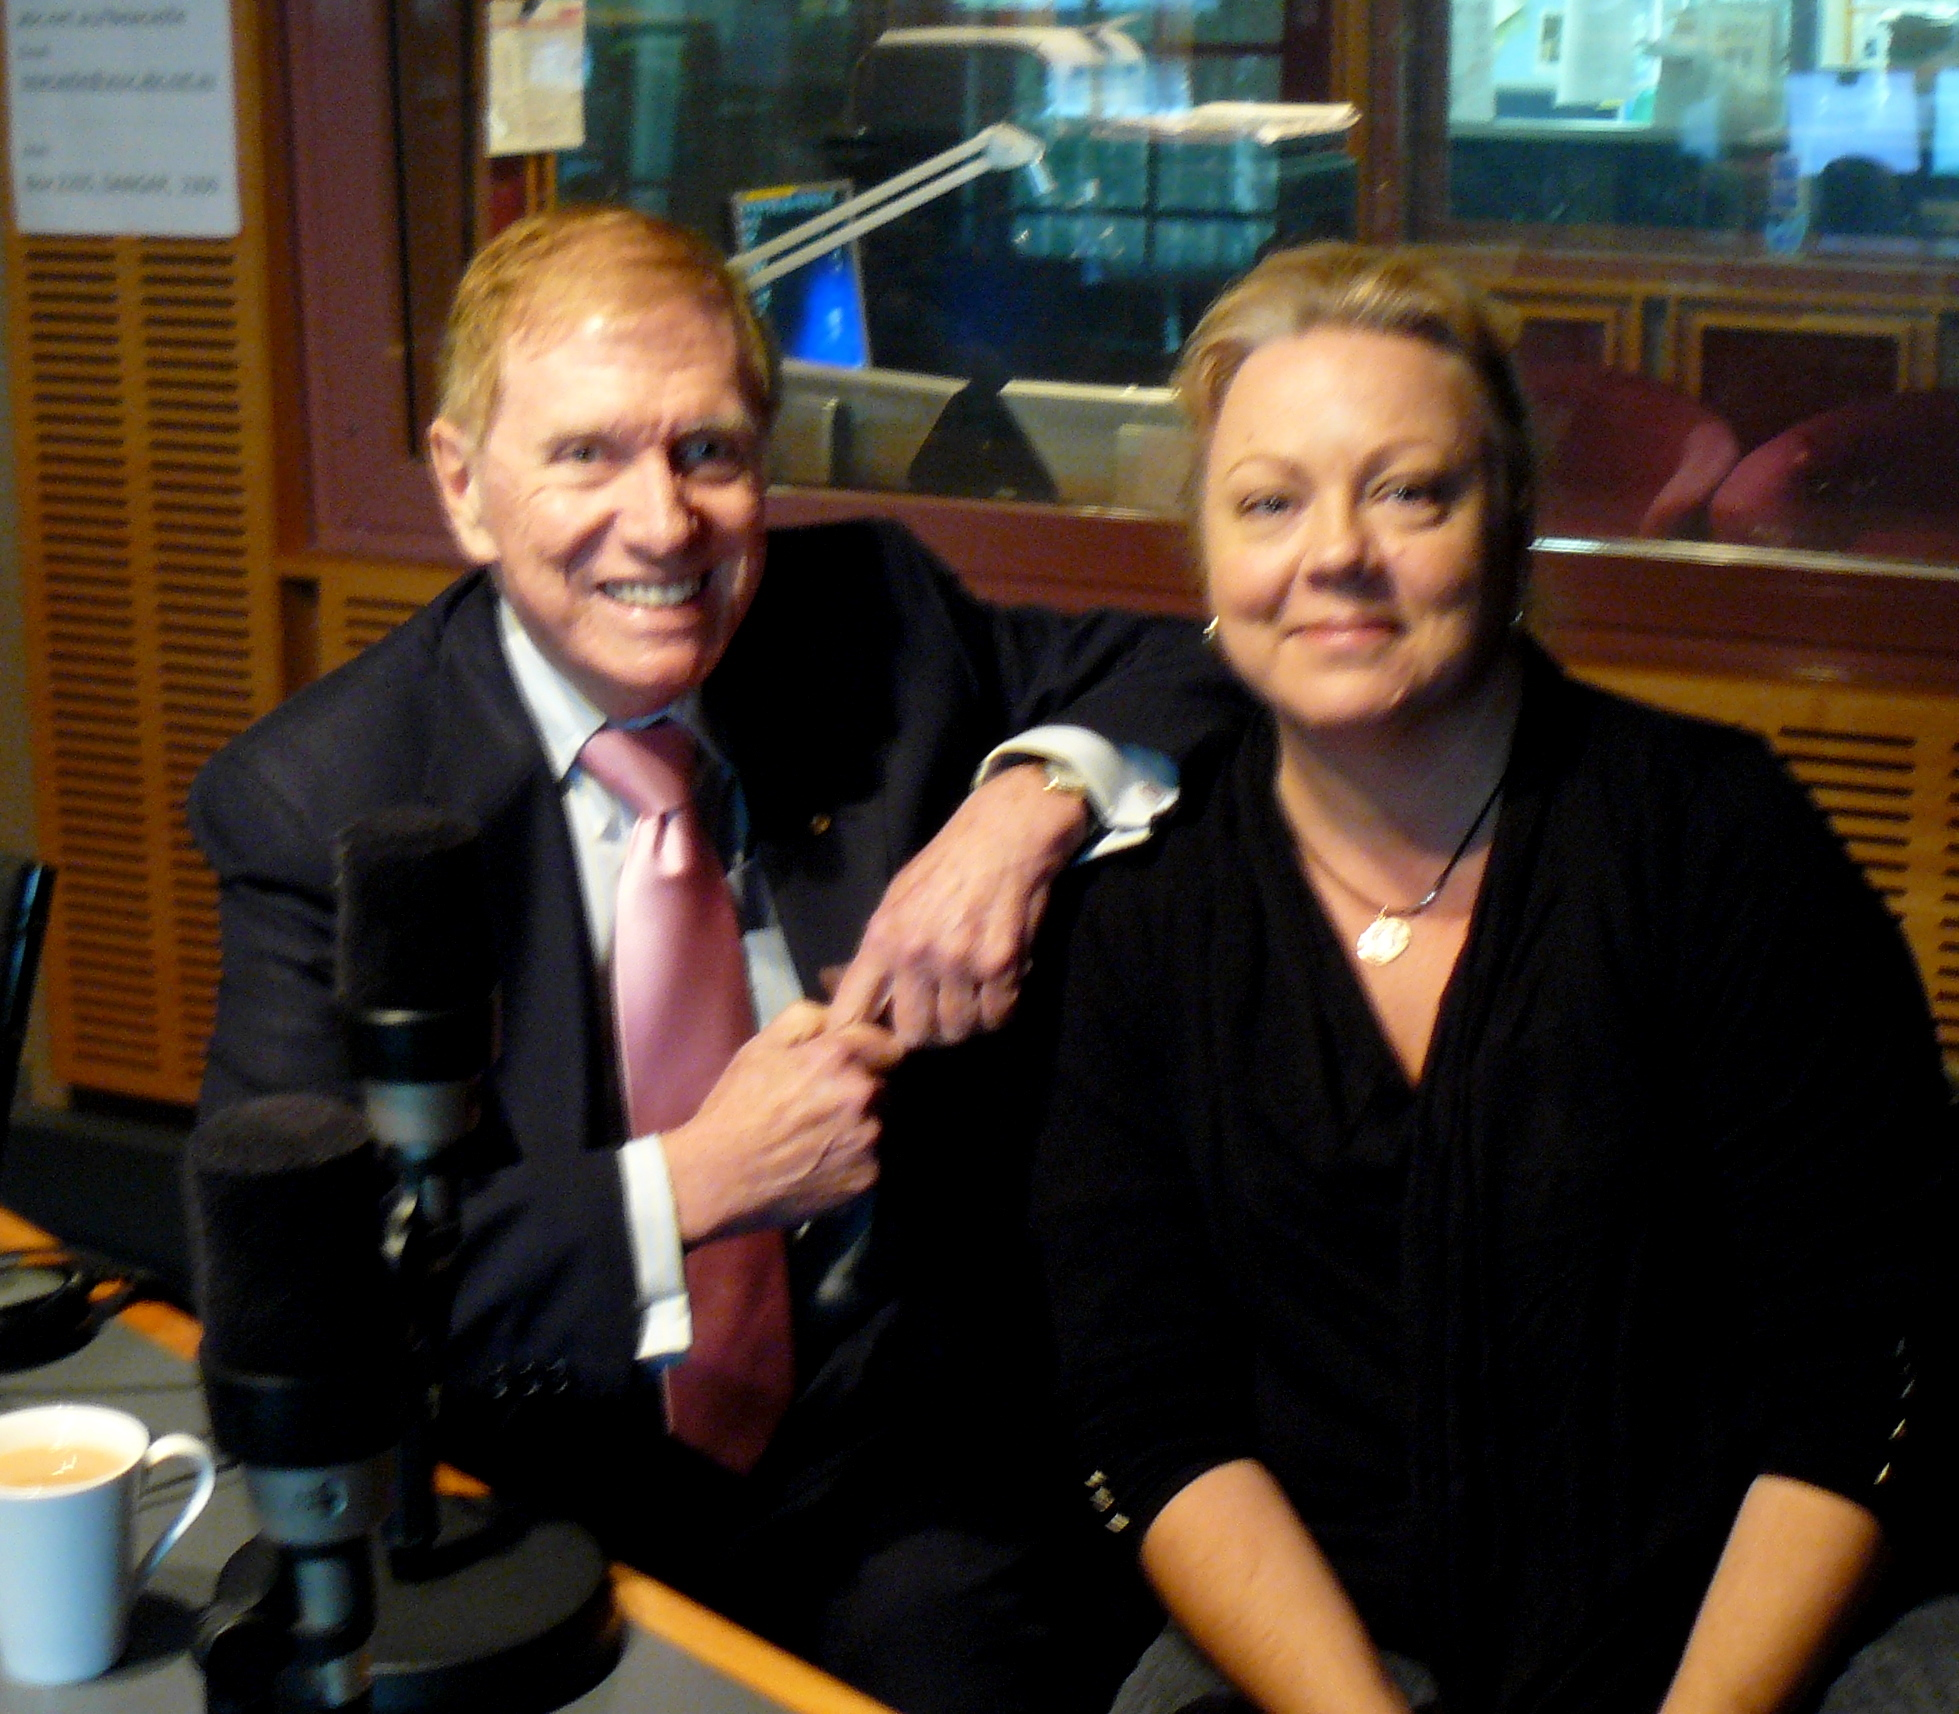 Carol Duncan - Australian broadcaster and journalist with the Hon Michael Kirby